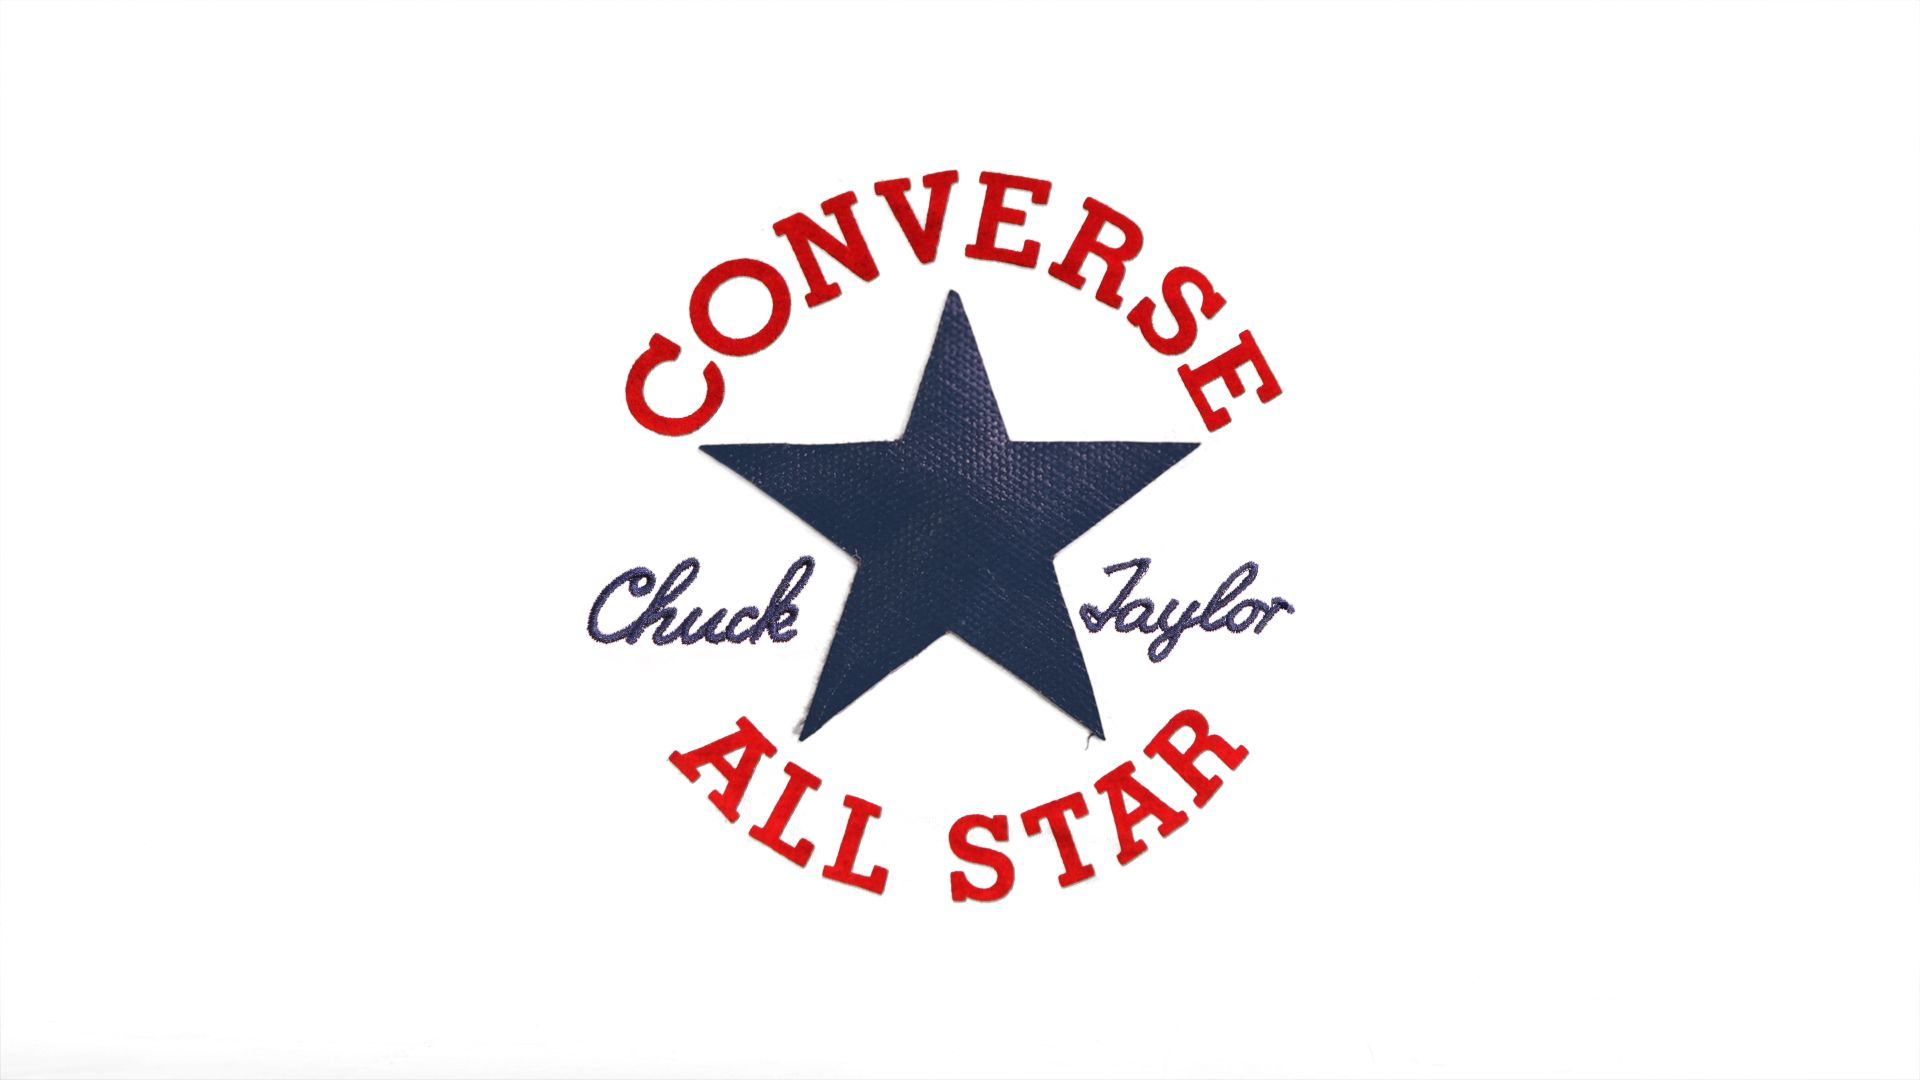 Image for Converse Chuck Taylor Wallpaper High Quality Resolution #ikeew